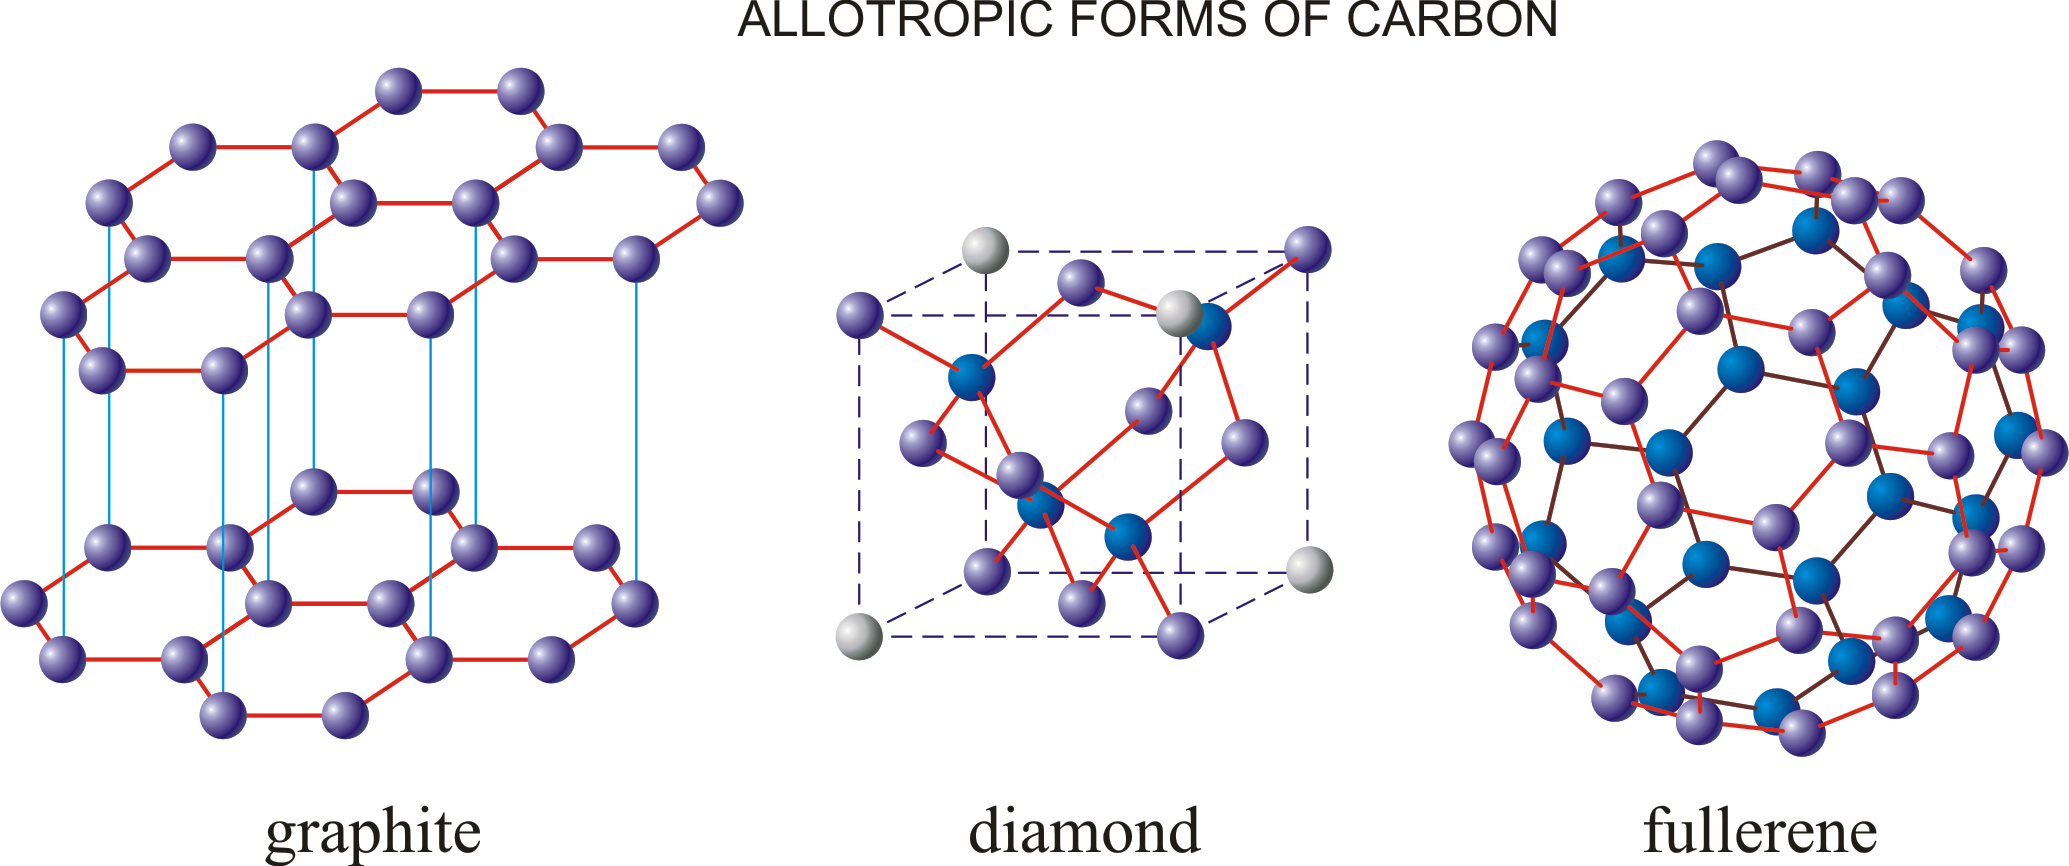 Allotropic forms of carbon